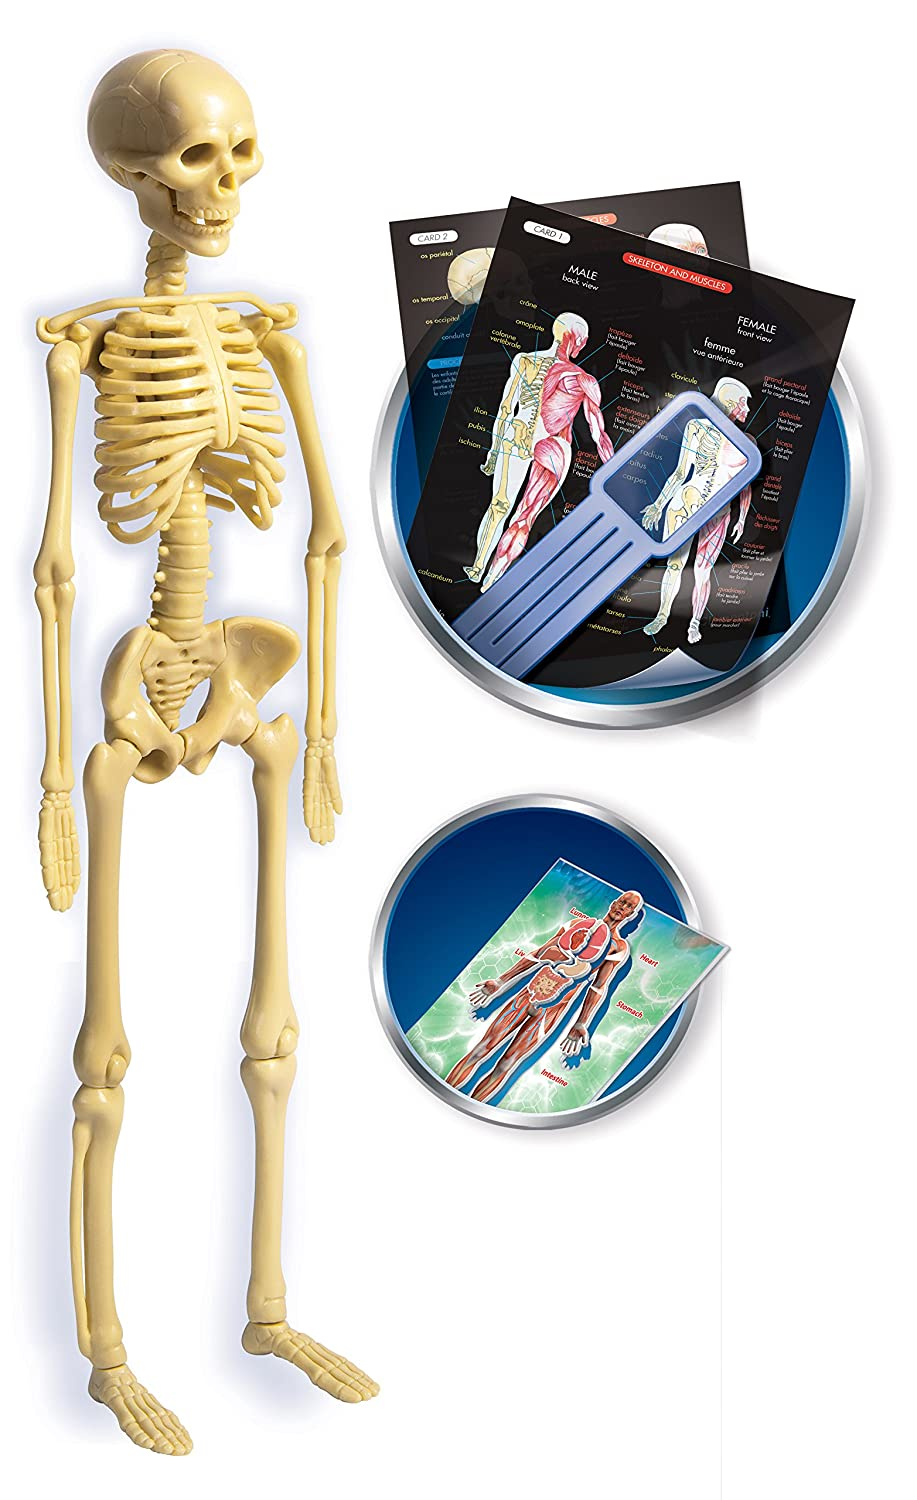 Clementoni Science And Play Anatomy Lab Amazon Toys Games